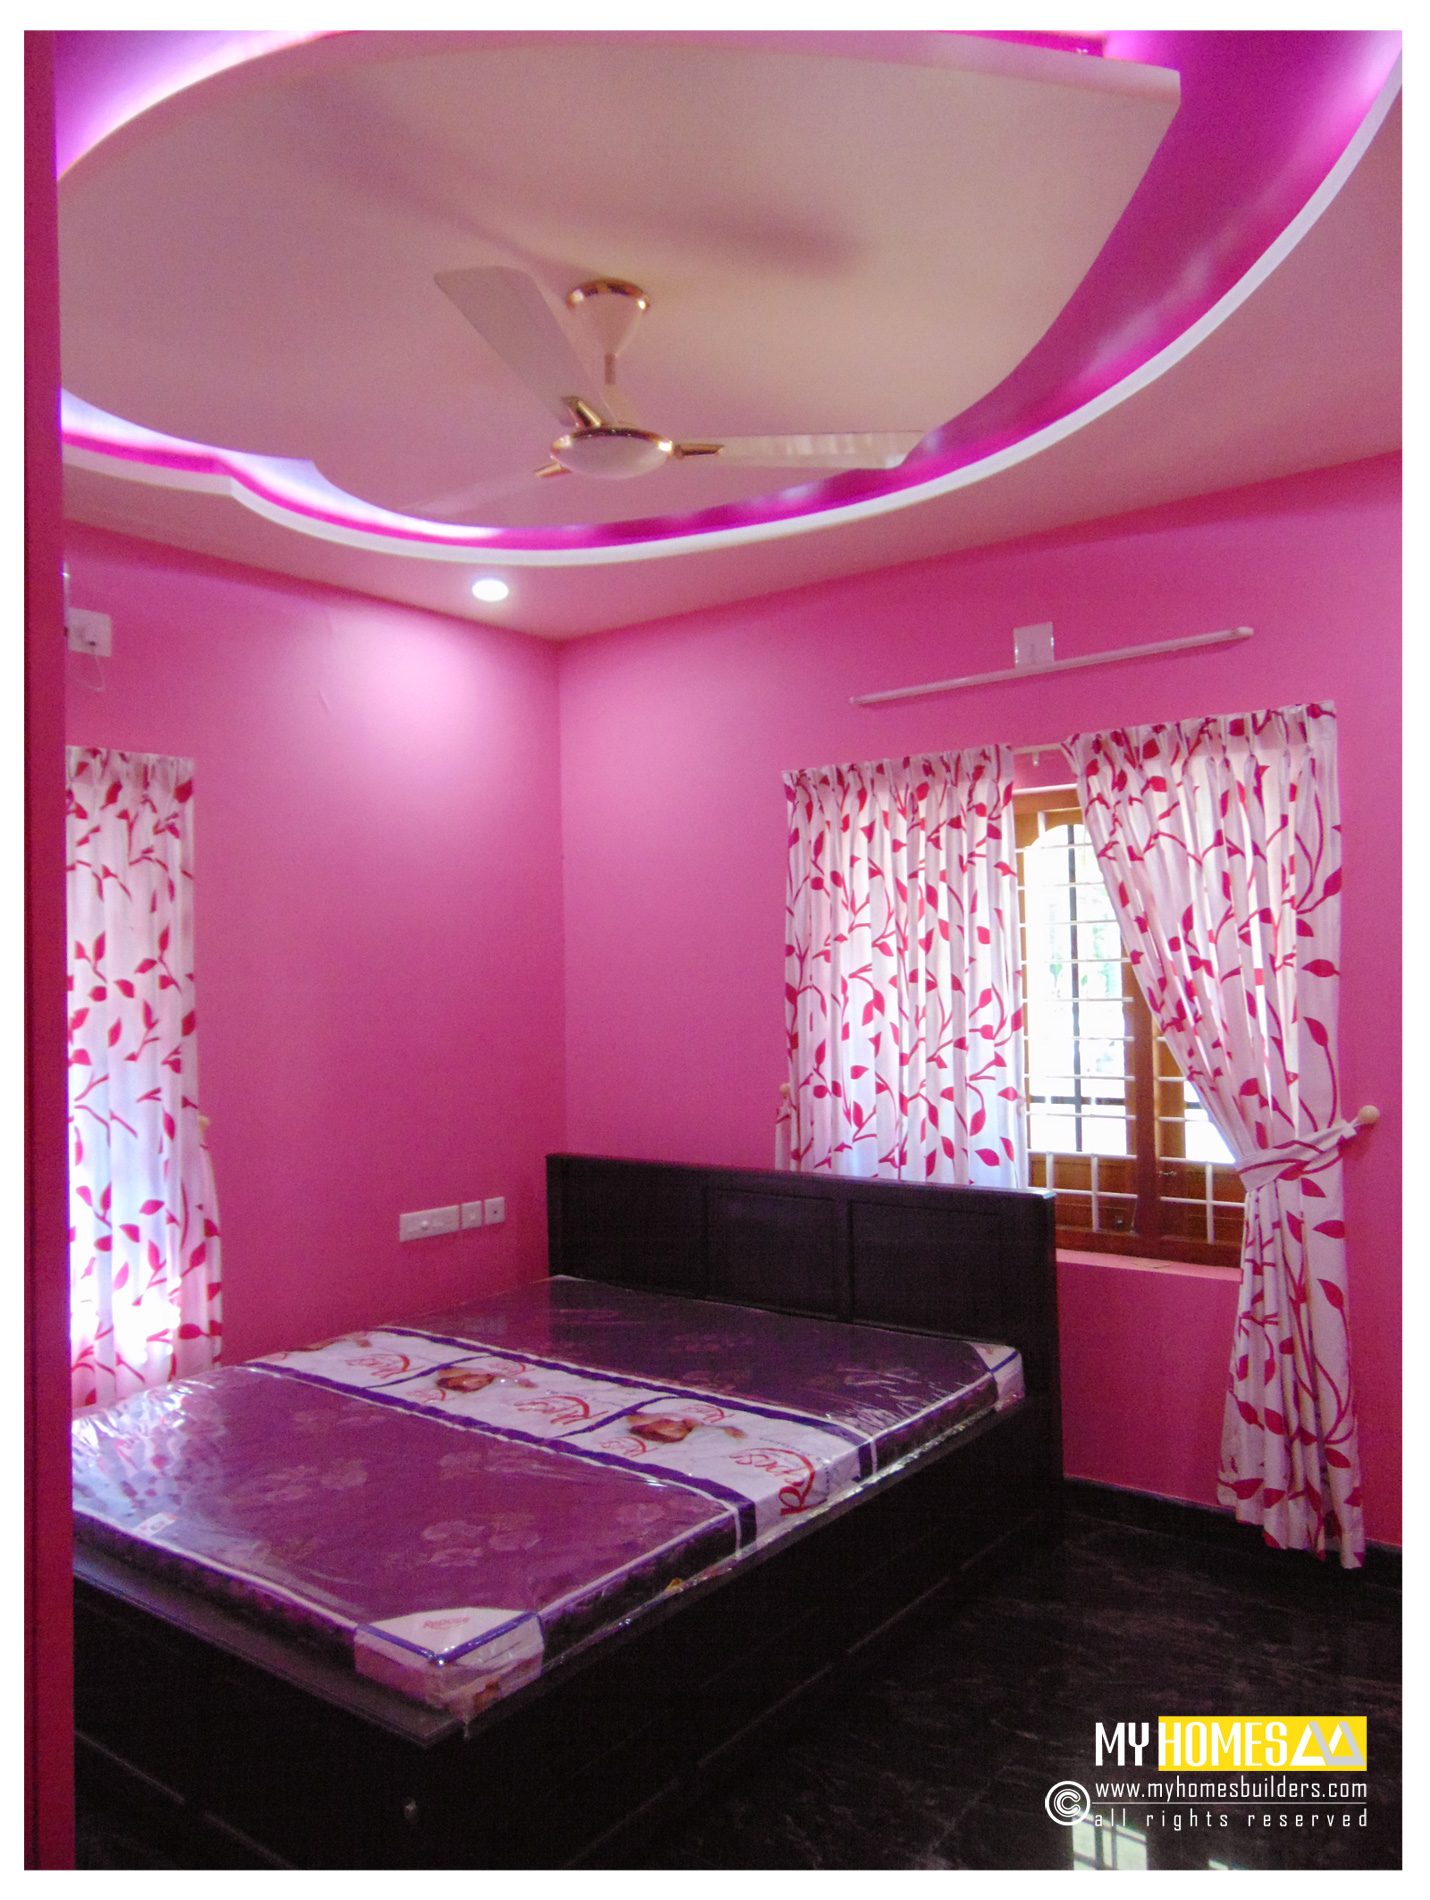 Simple style kerala bedroom designs ideas for home interior for Bedroom design pictures